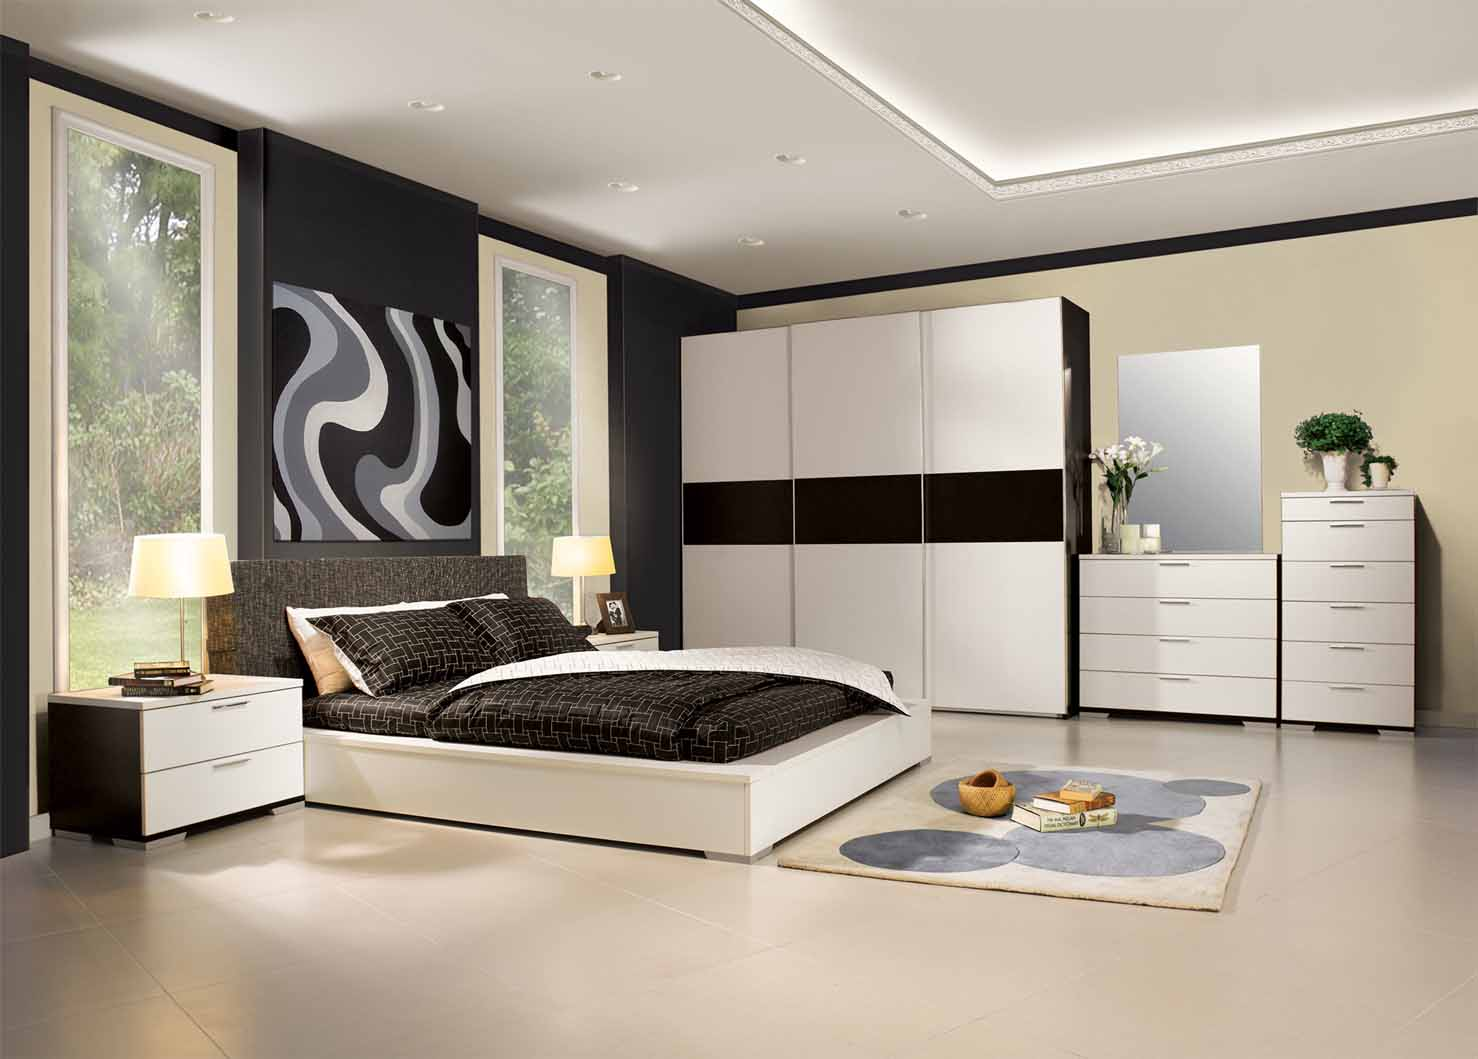 25 Best Bedroom Designs Ideas - The WoW Style on Teenage:rfnoincytf8= Room Designs  id=20586